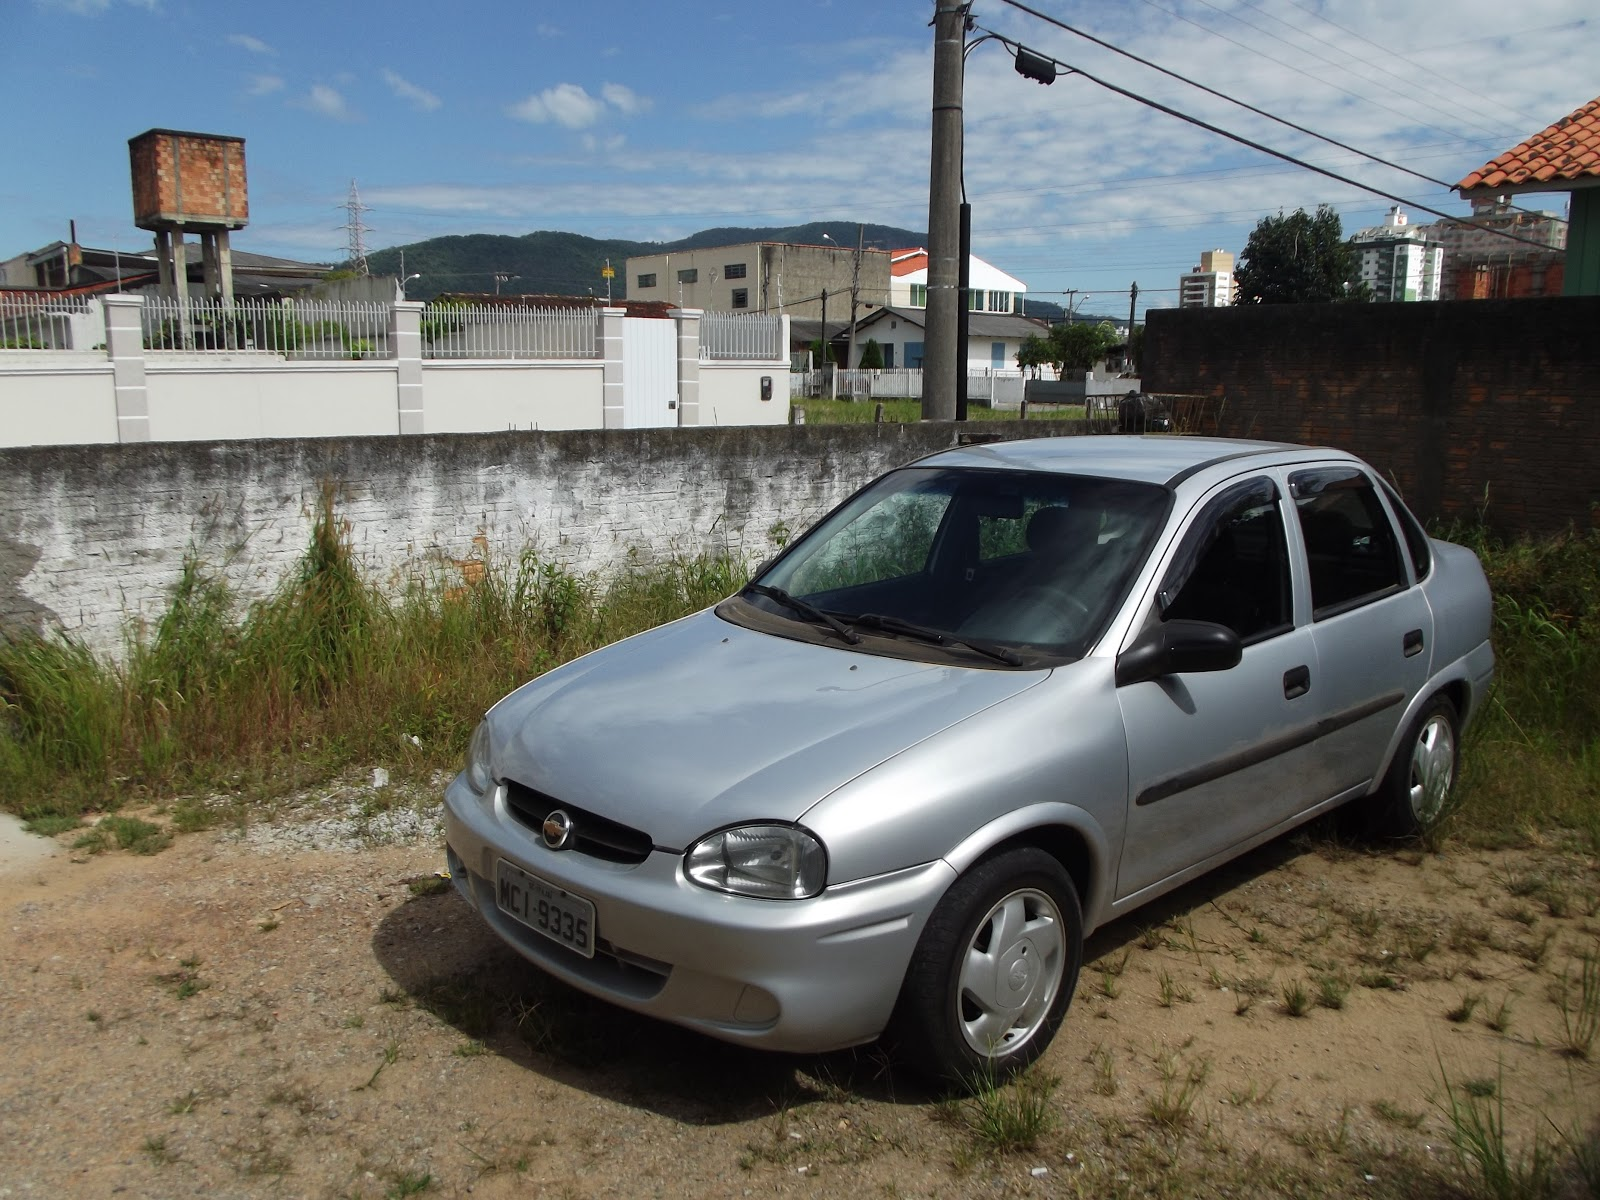 2000 Chevrolet Corsa Sedan Gm 4200 Pictures Information And